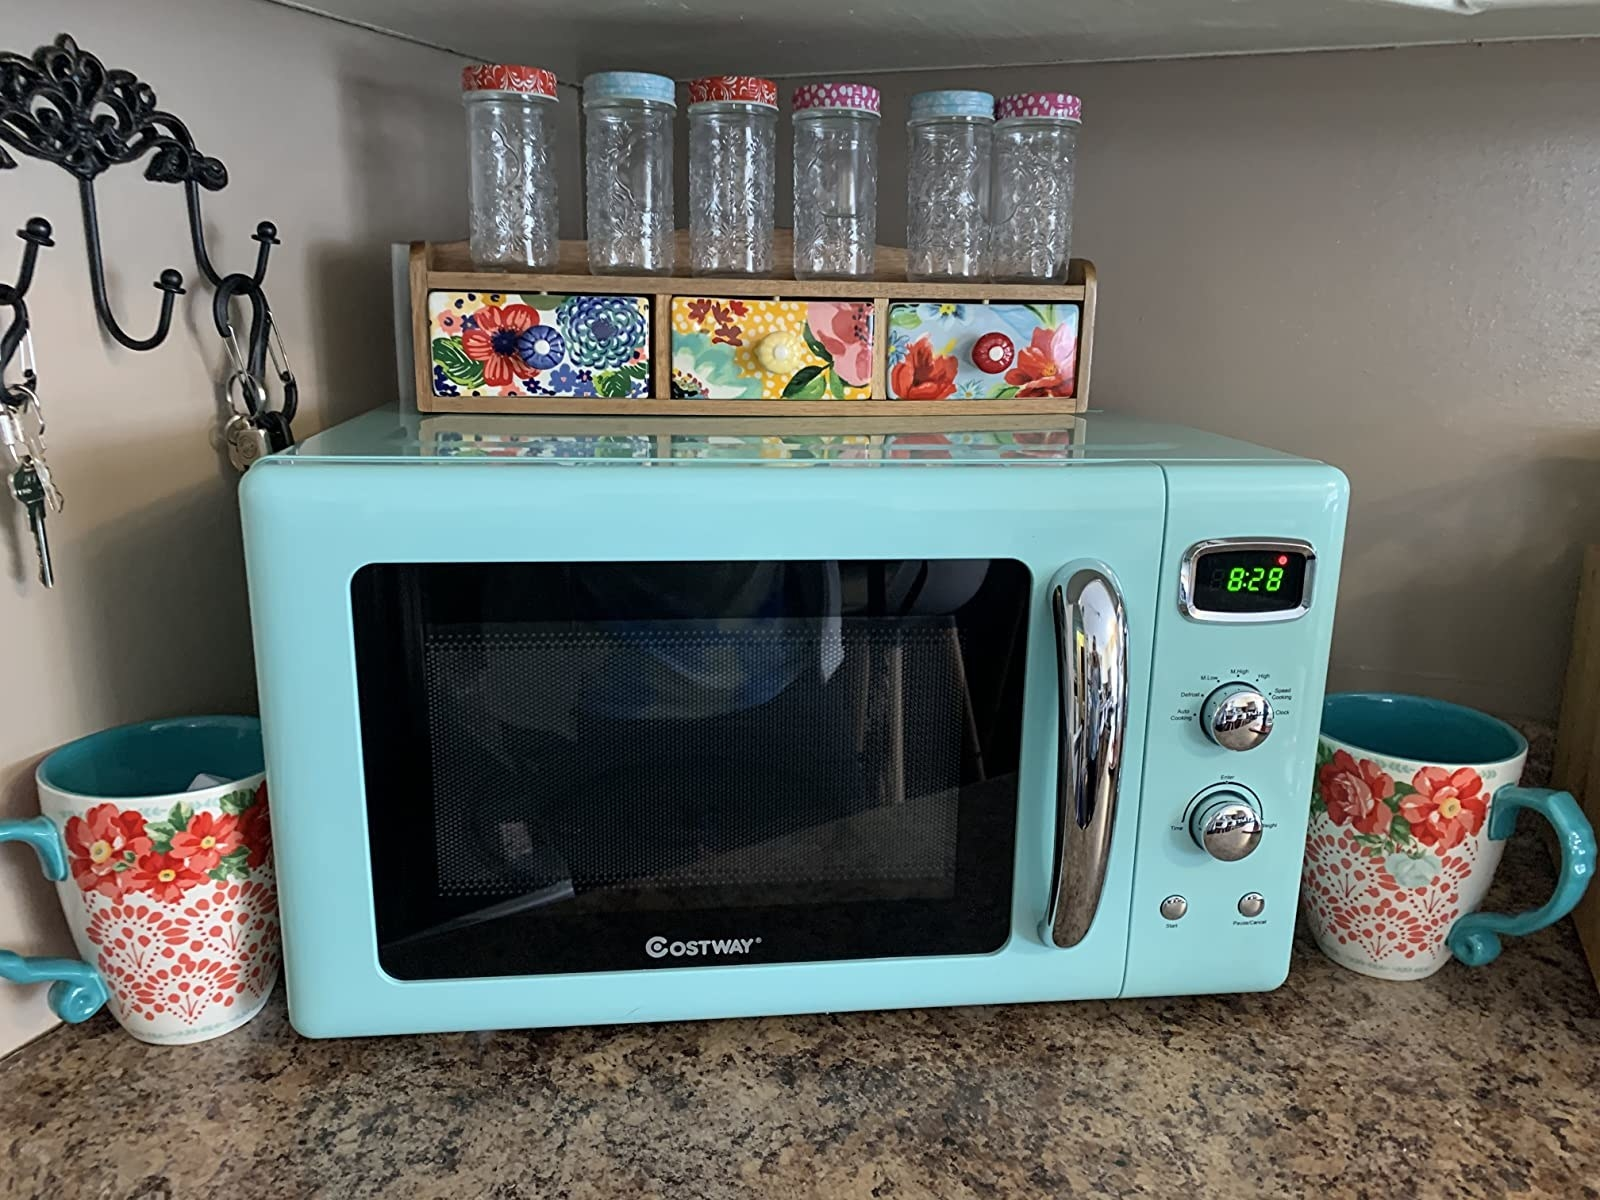 reviewer image of the green COSTWAY Retro Countertop Microwave on a kitchen counter